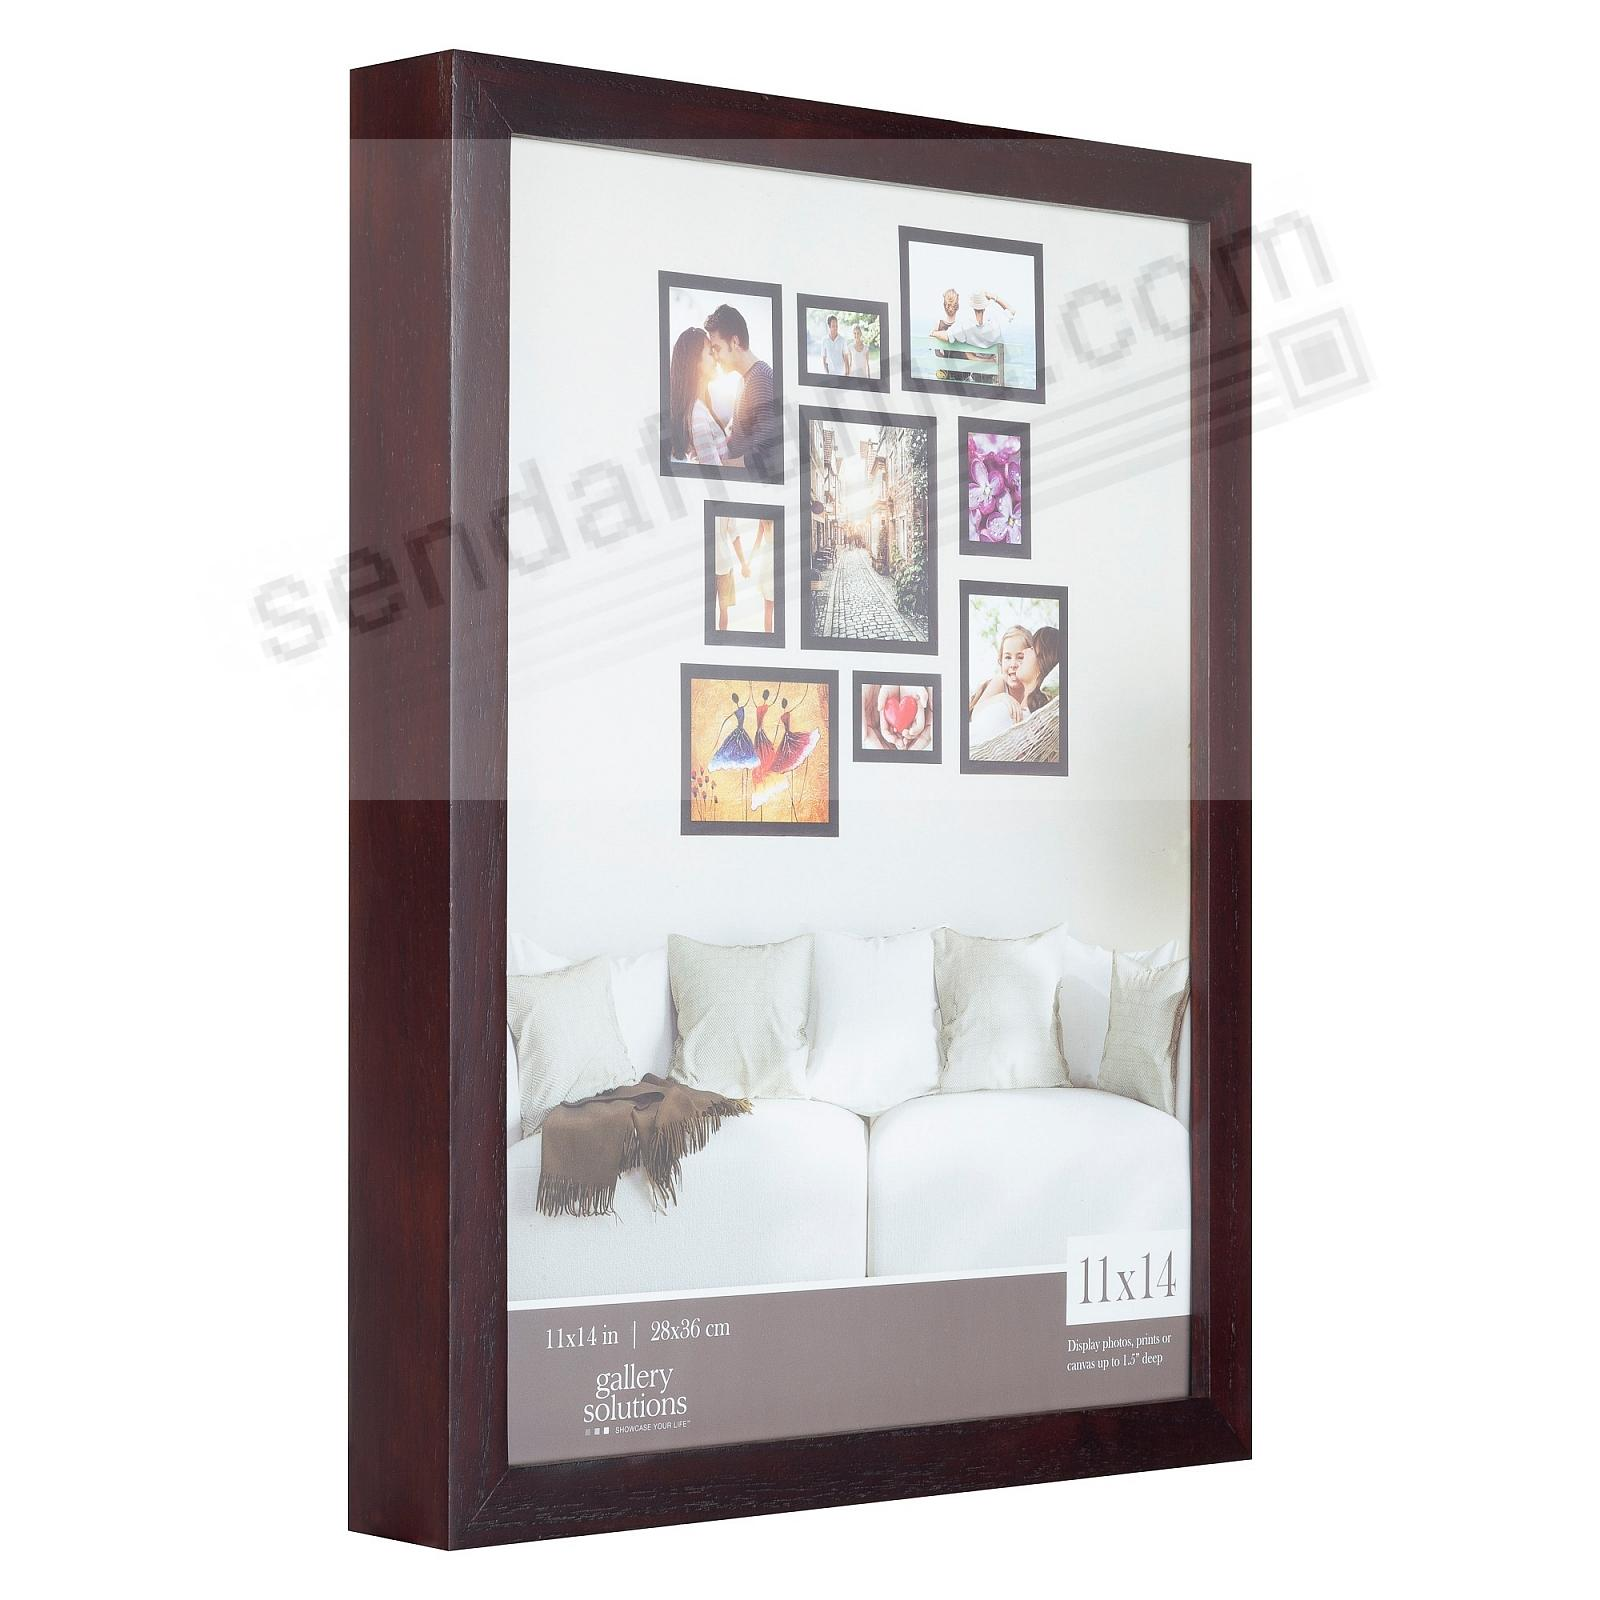 Walnut GALLERY 11x14 frame by Gallery Solutions®